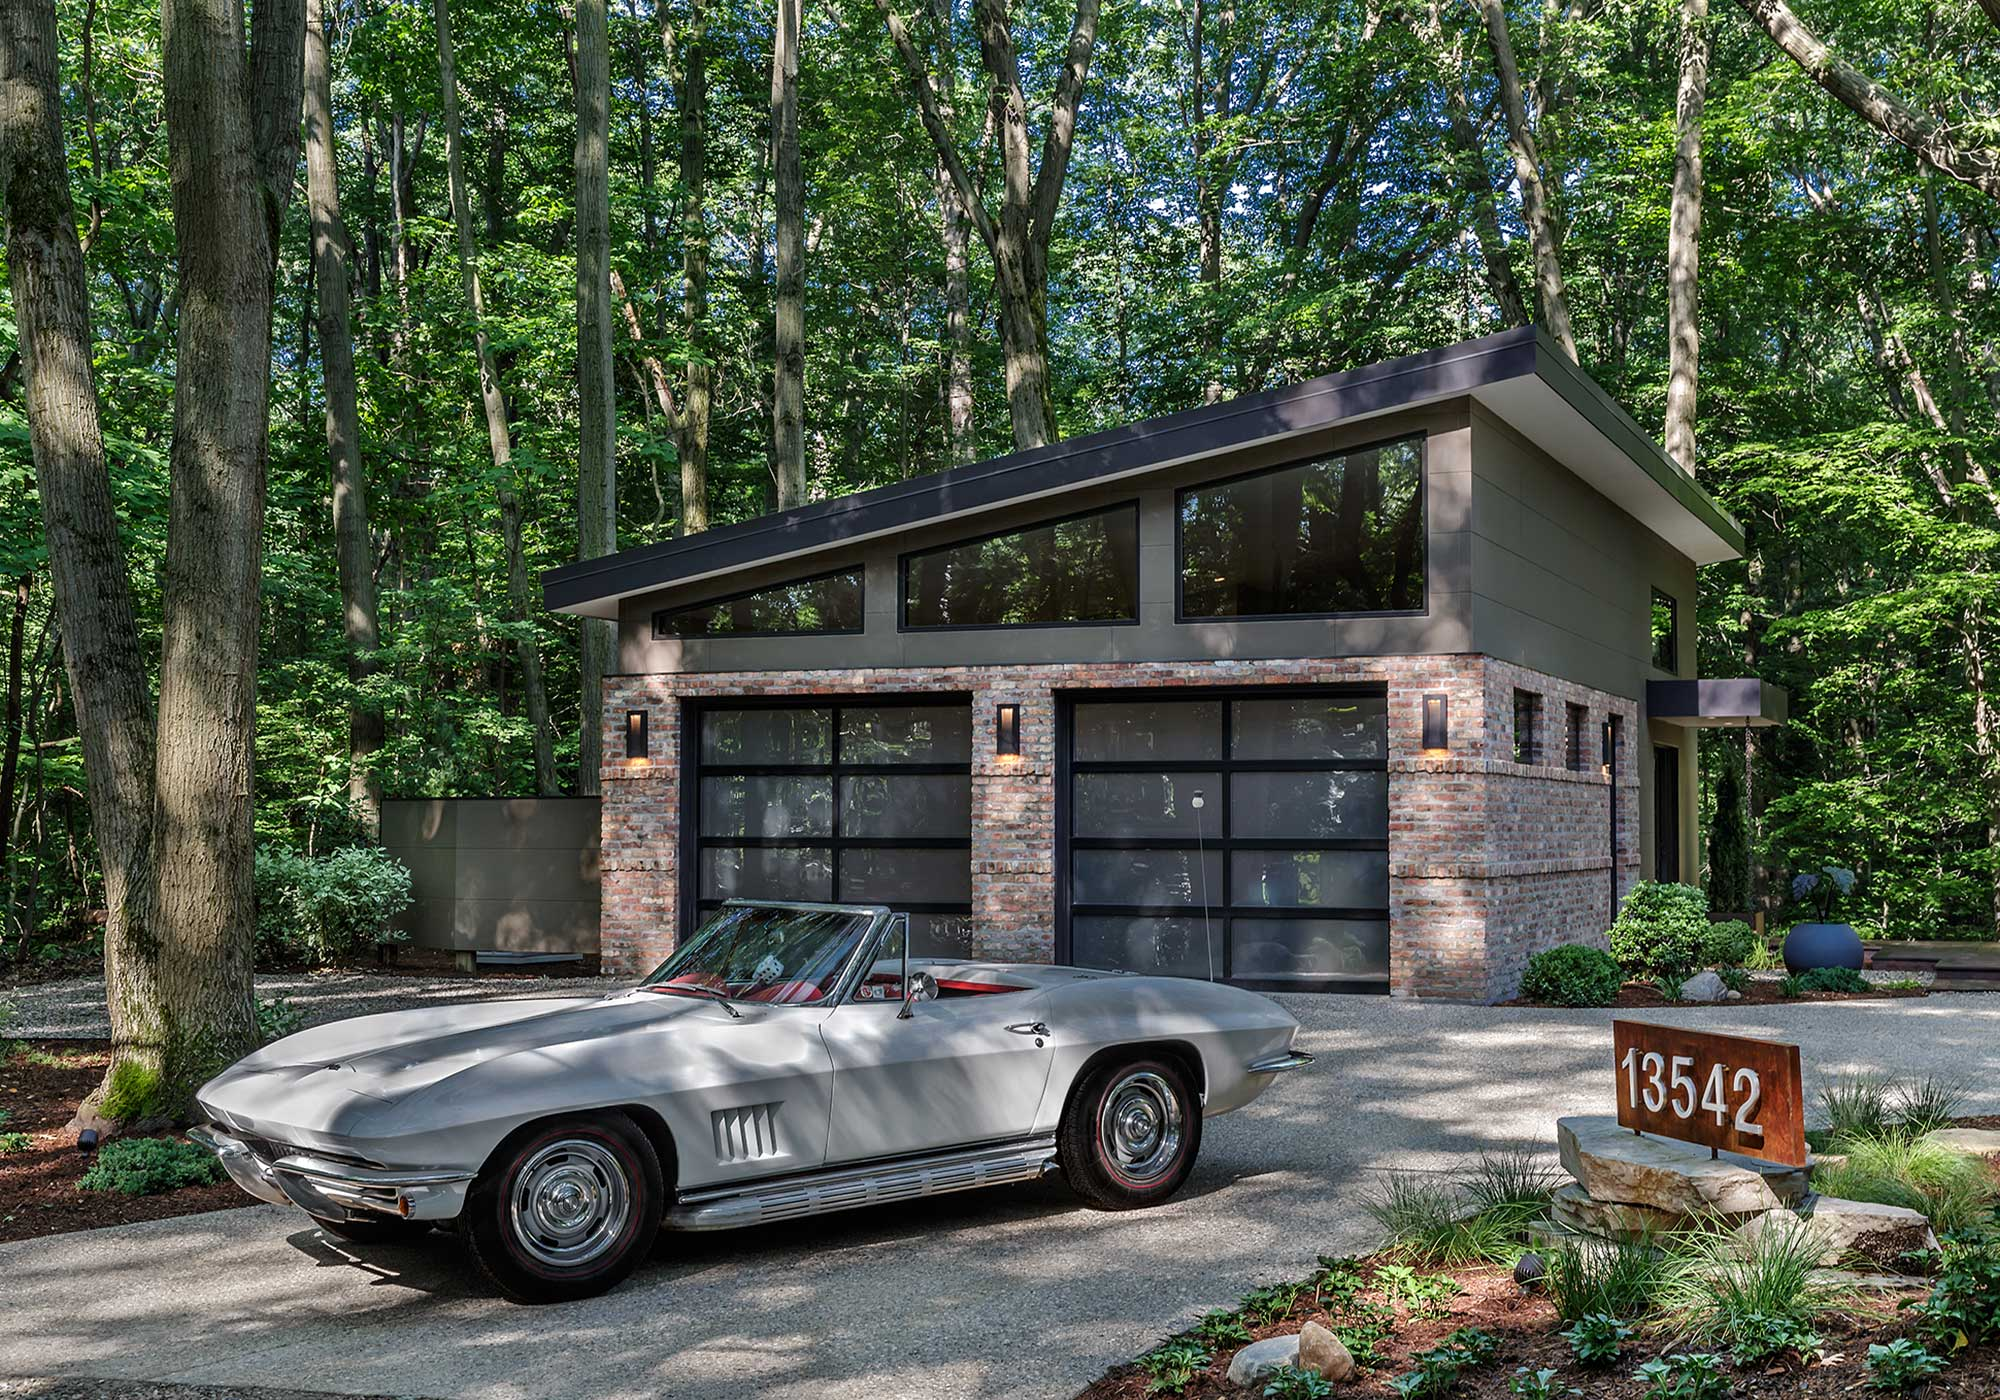 Classic car in front of a garage